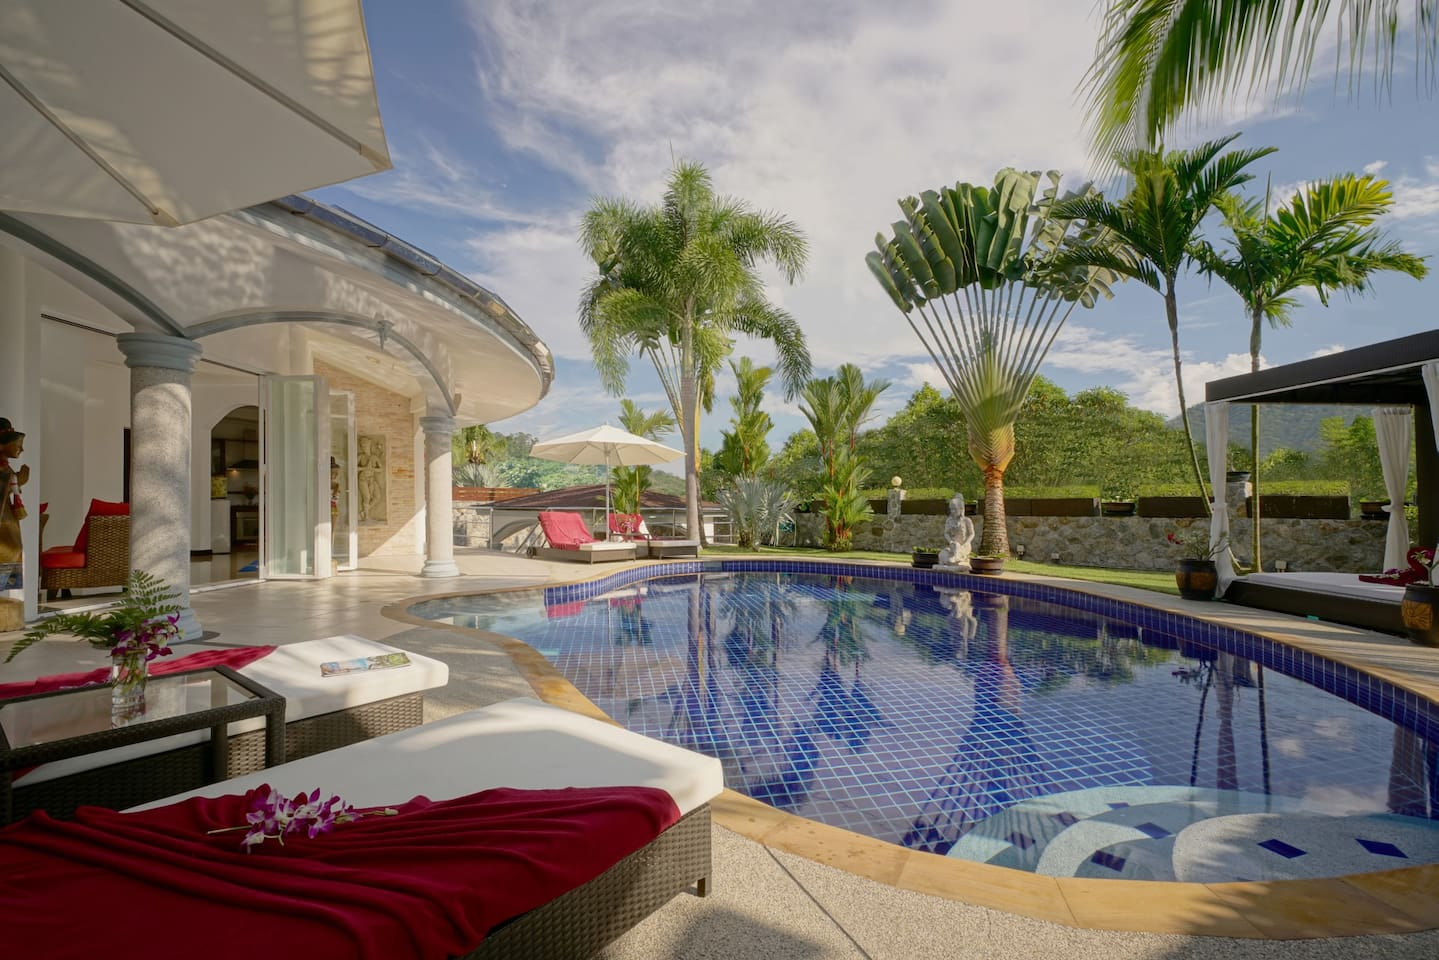 Pure privacy in your tropical garden